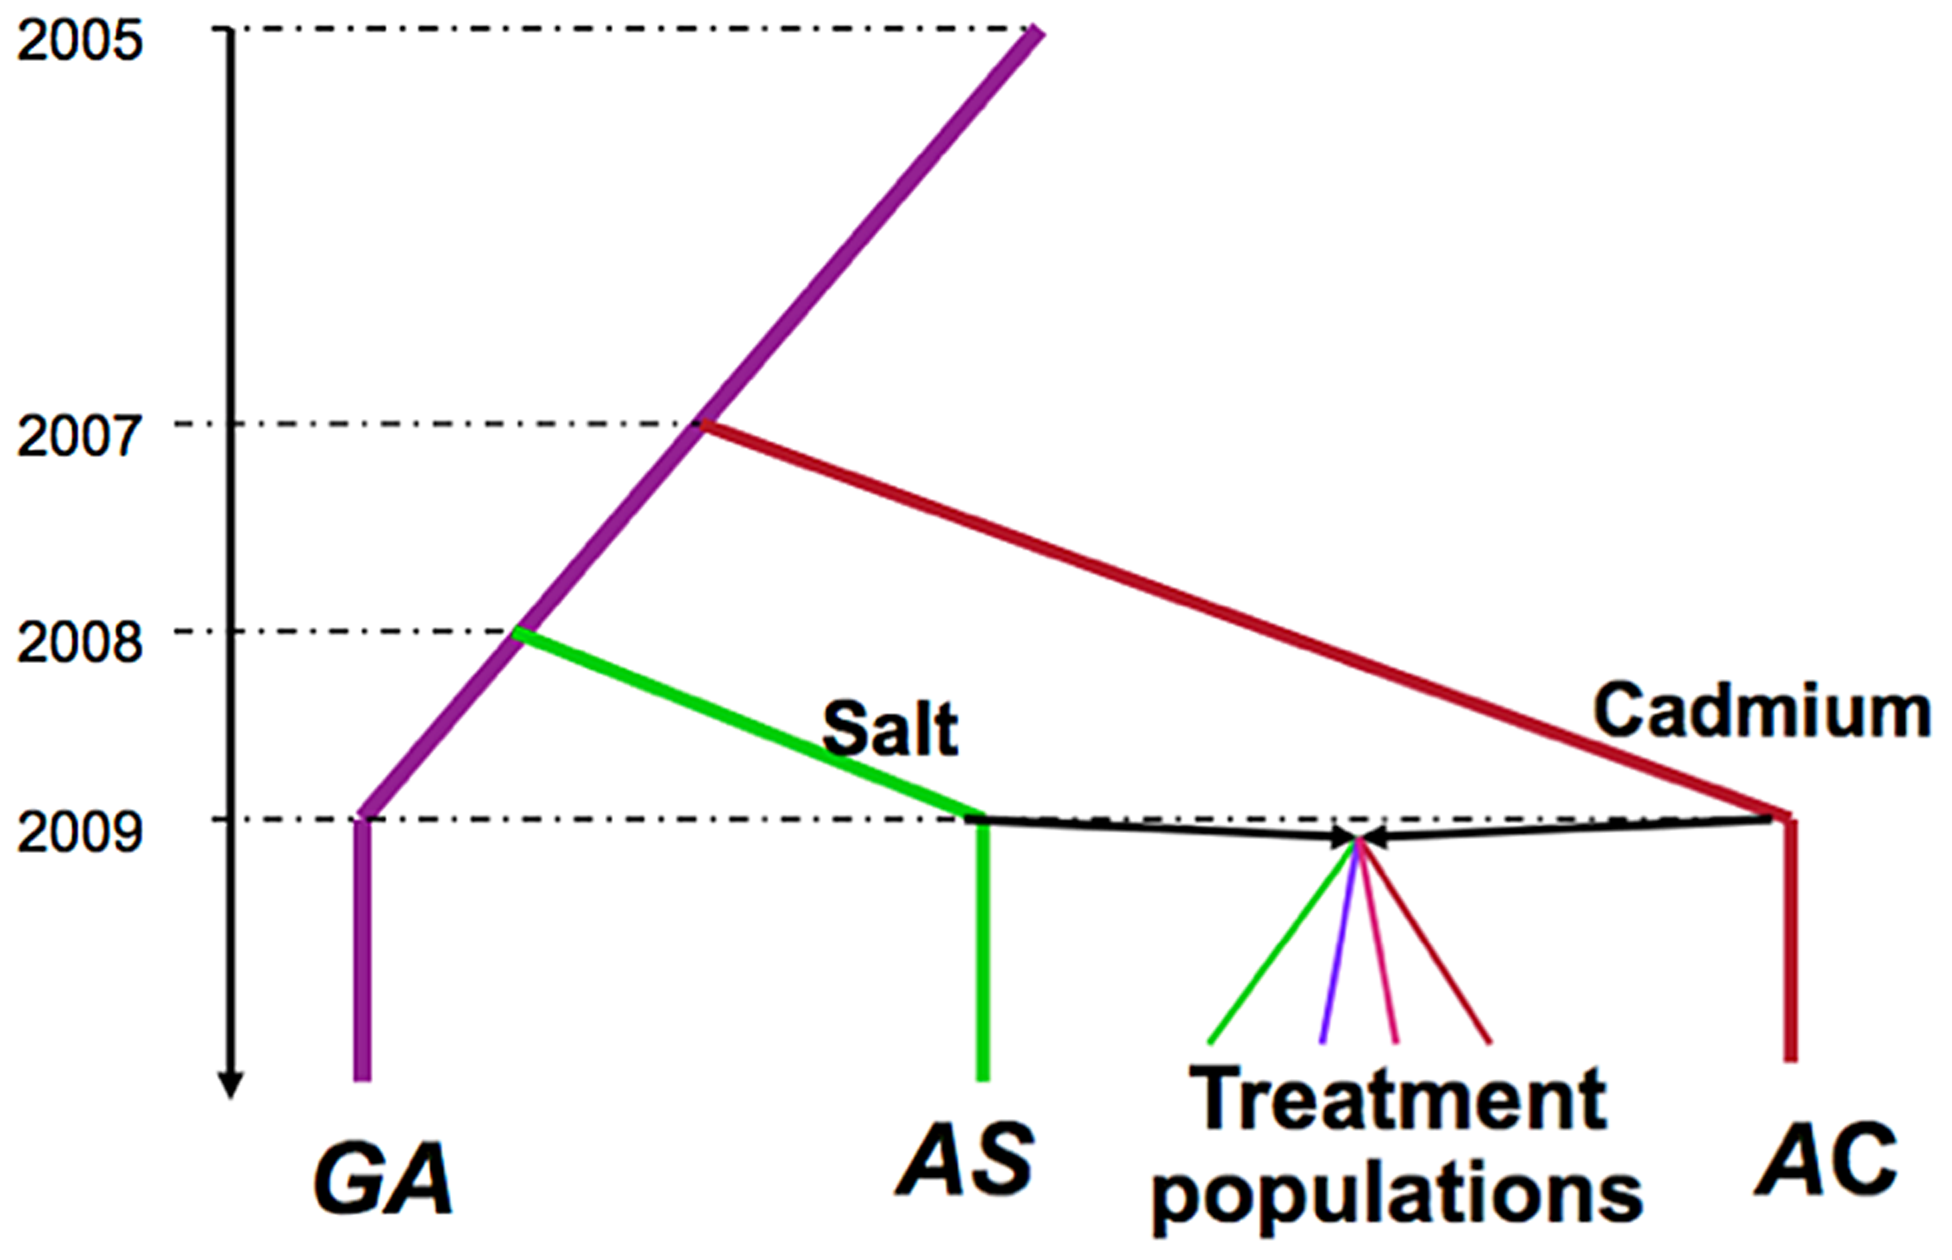 Selection history of the experimental populations.